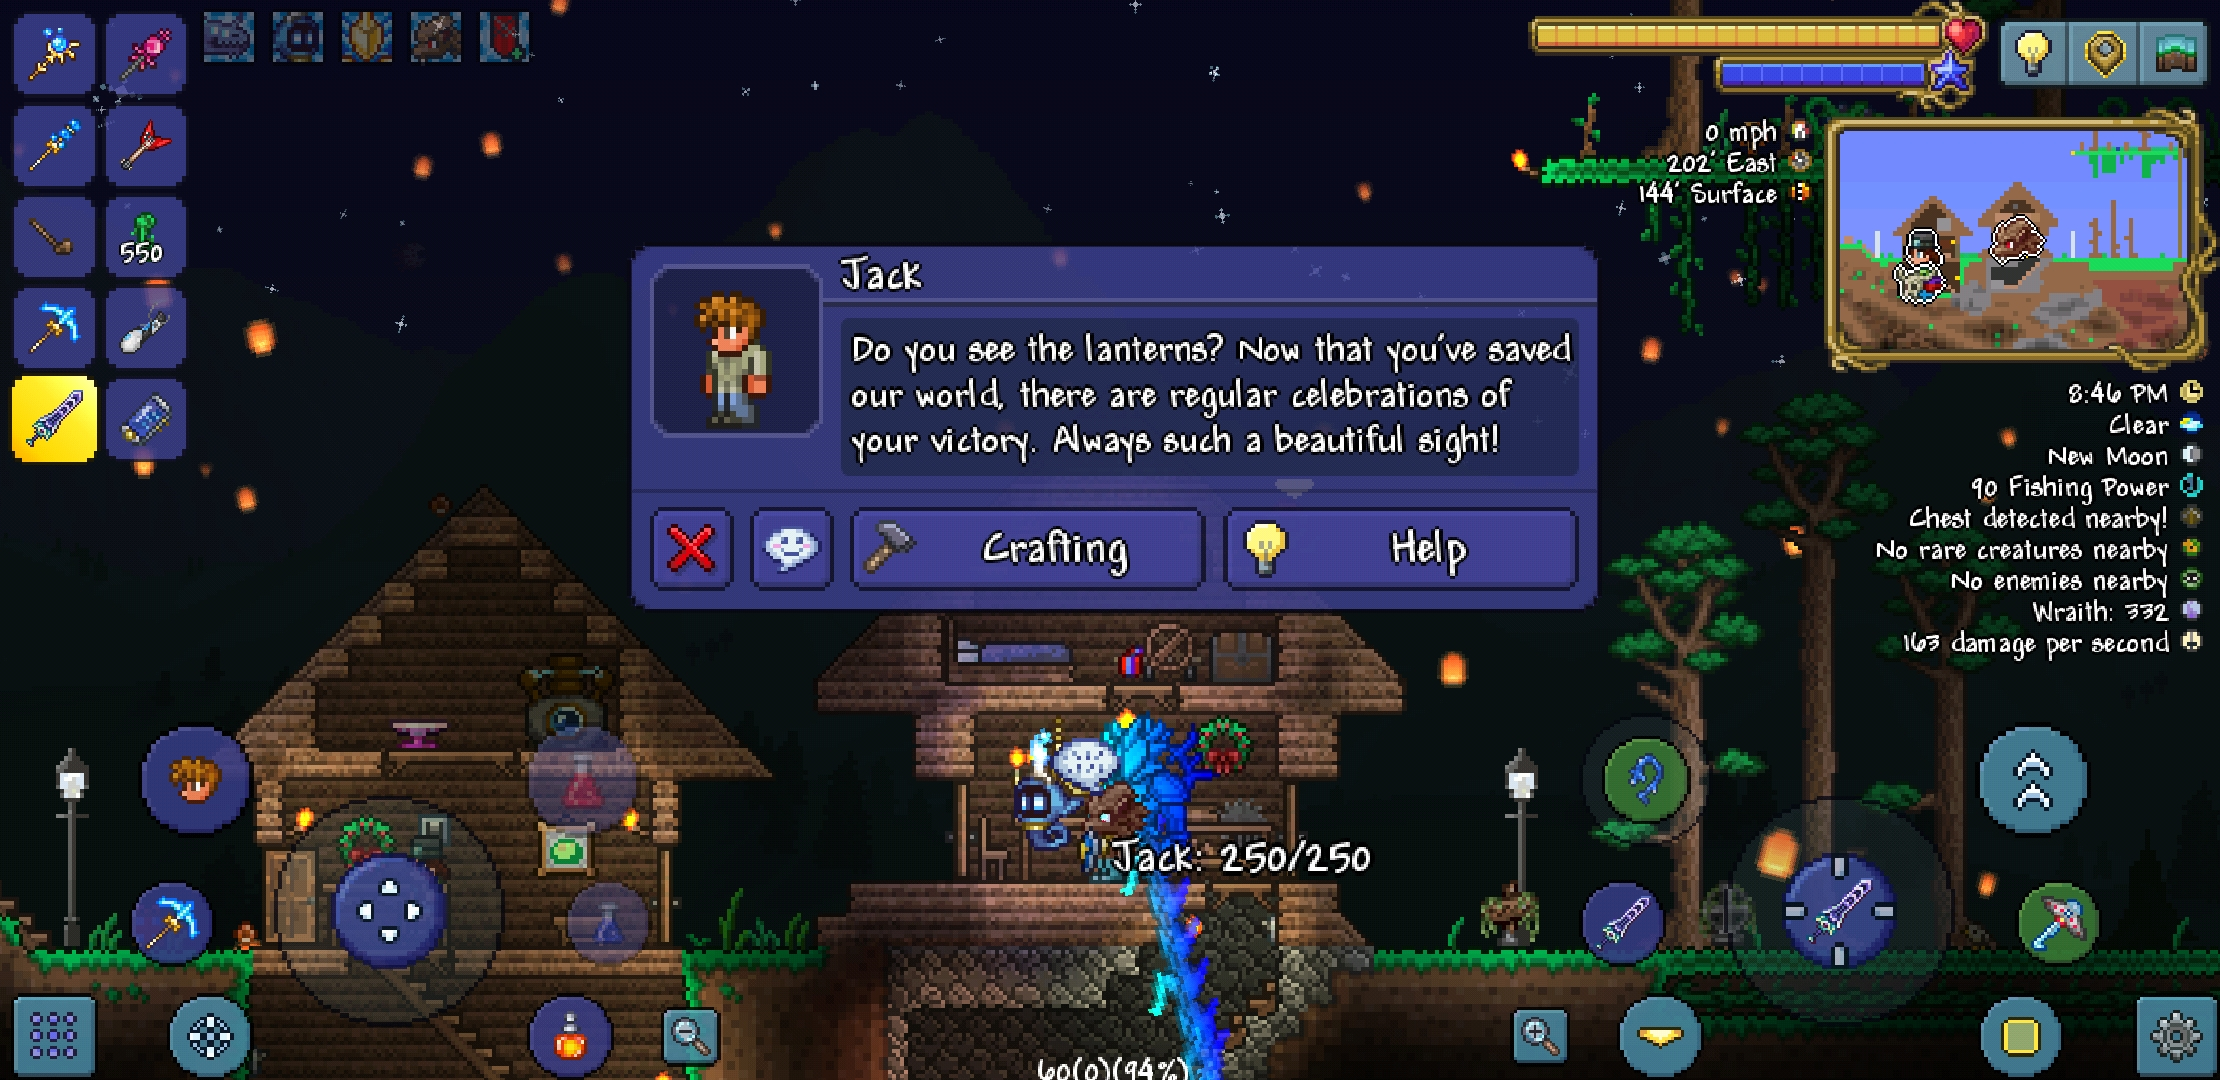 Screenshot_20201217-185756_Terraria.jpg